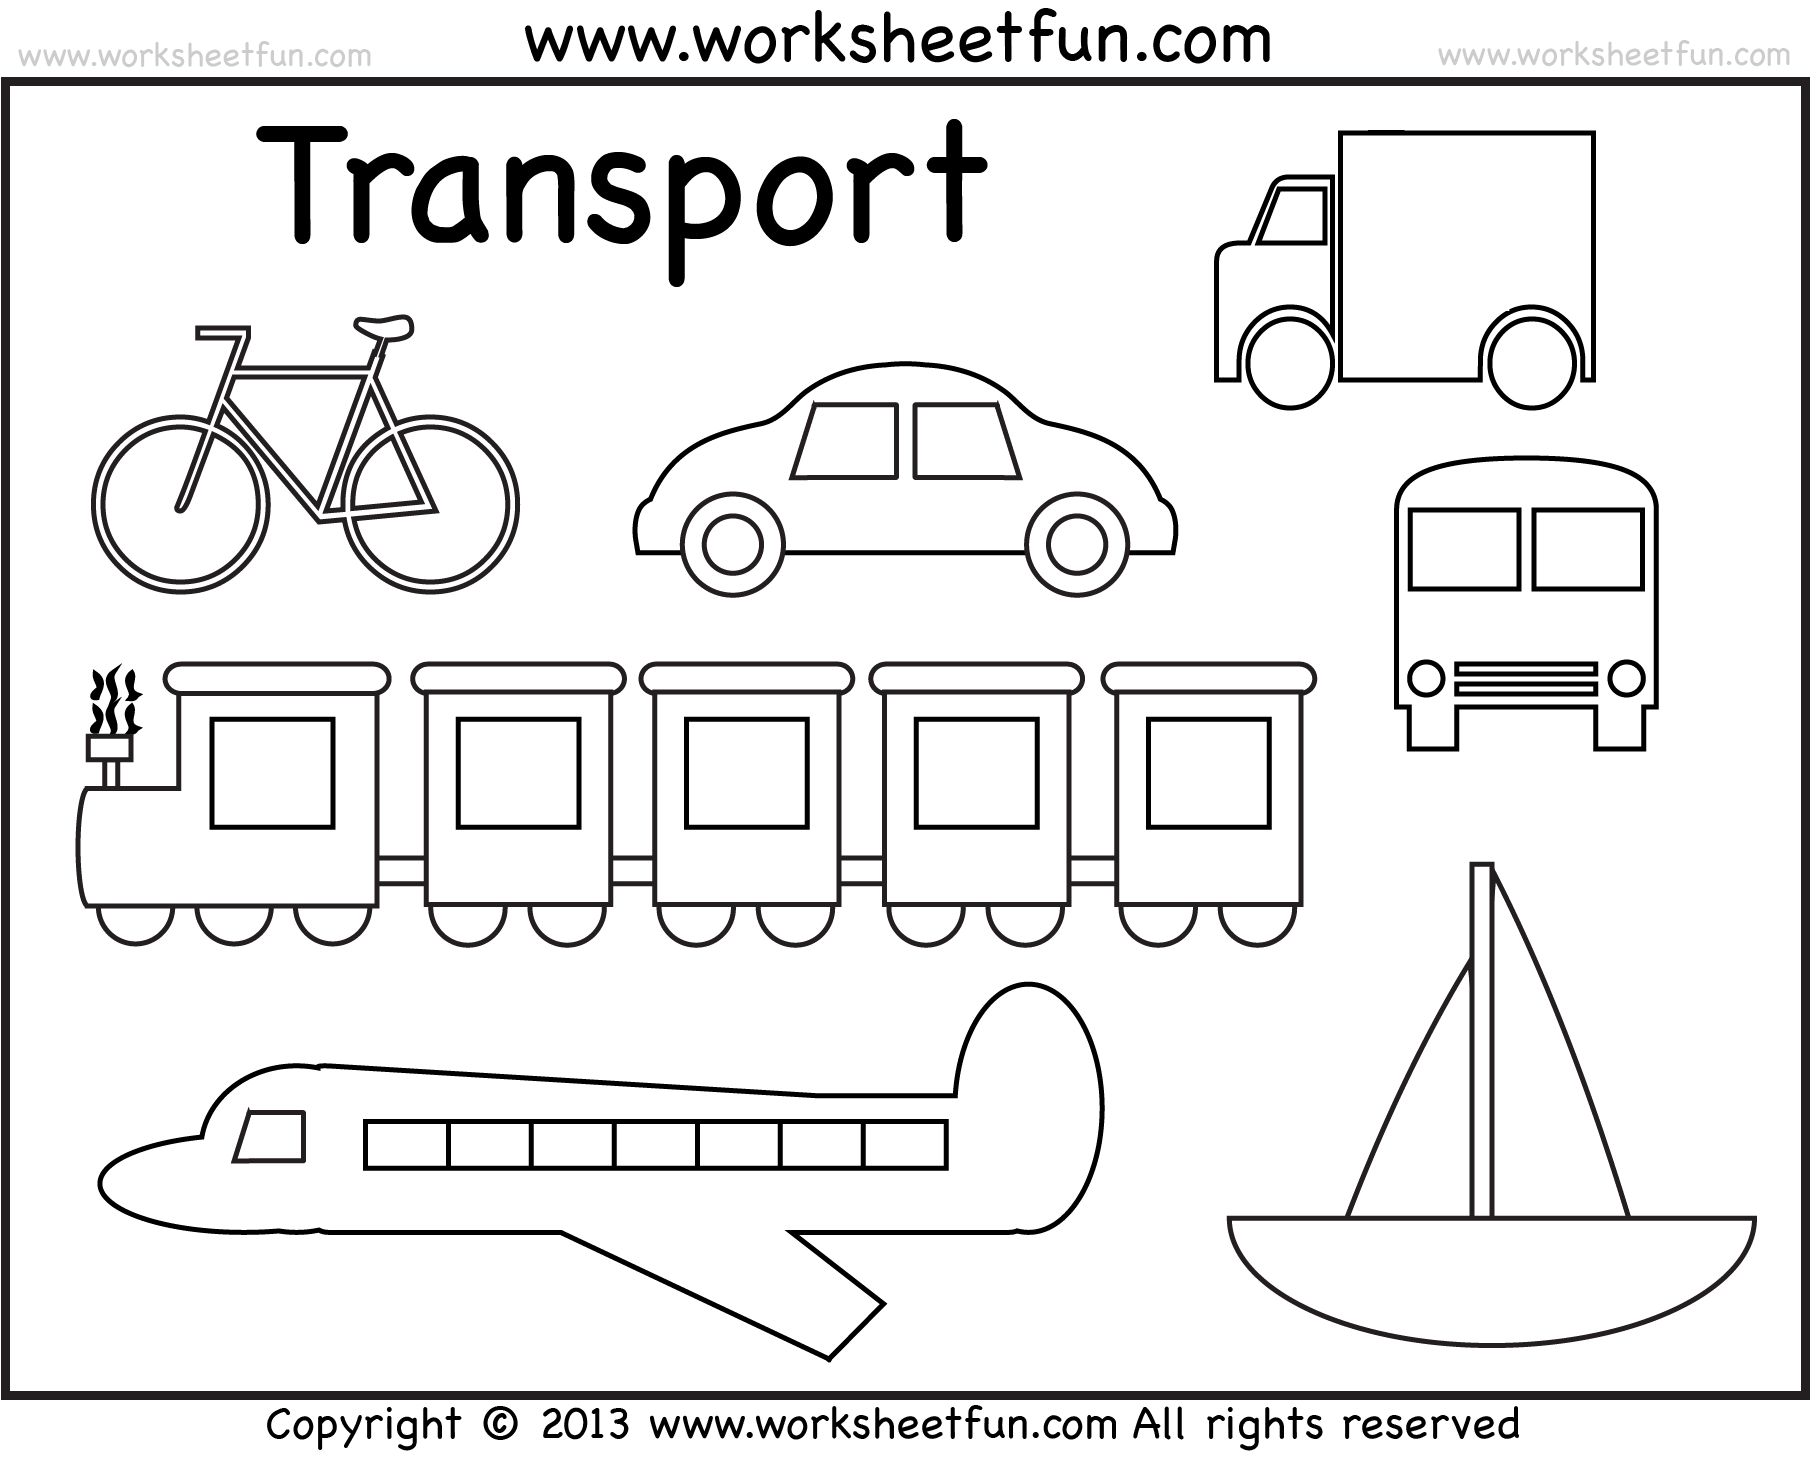 Transport drawing colouring. Modes of transportation coloring